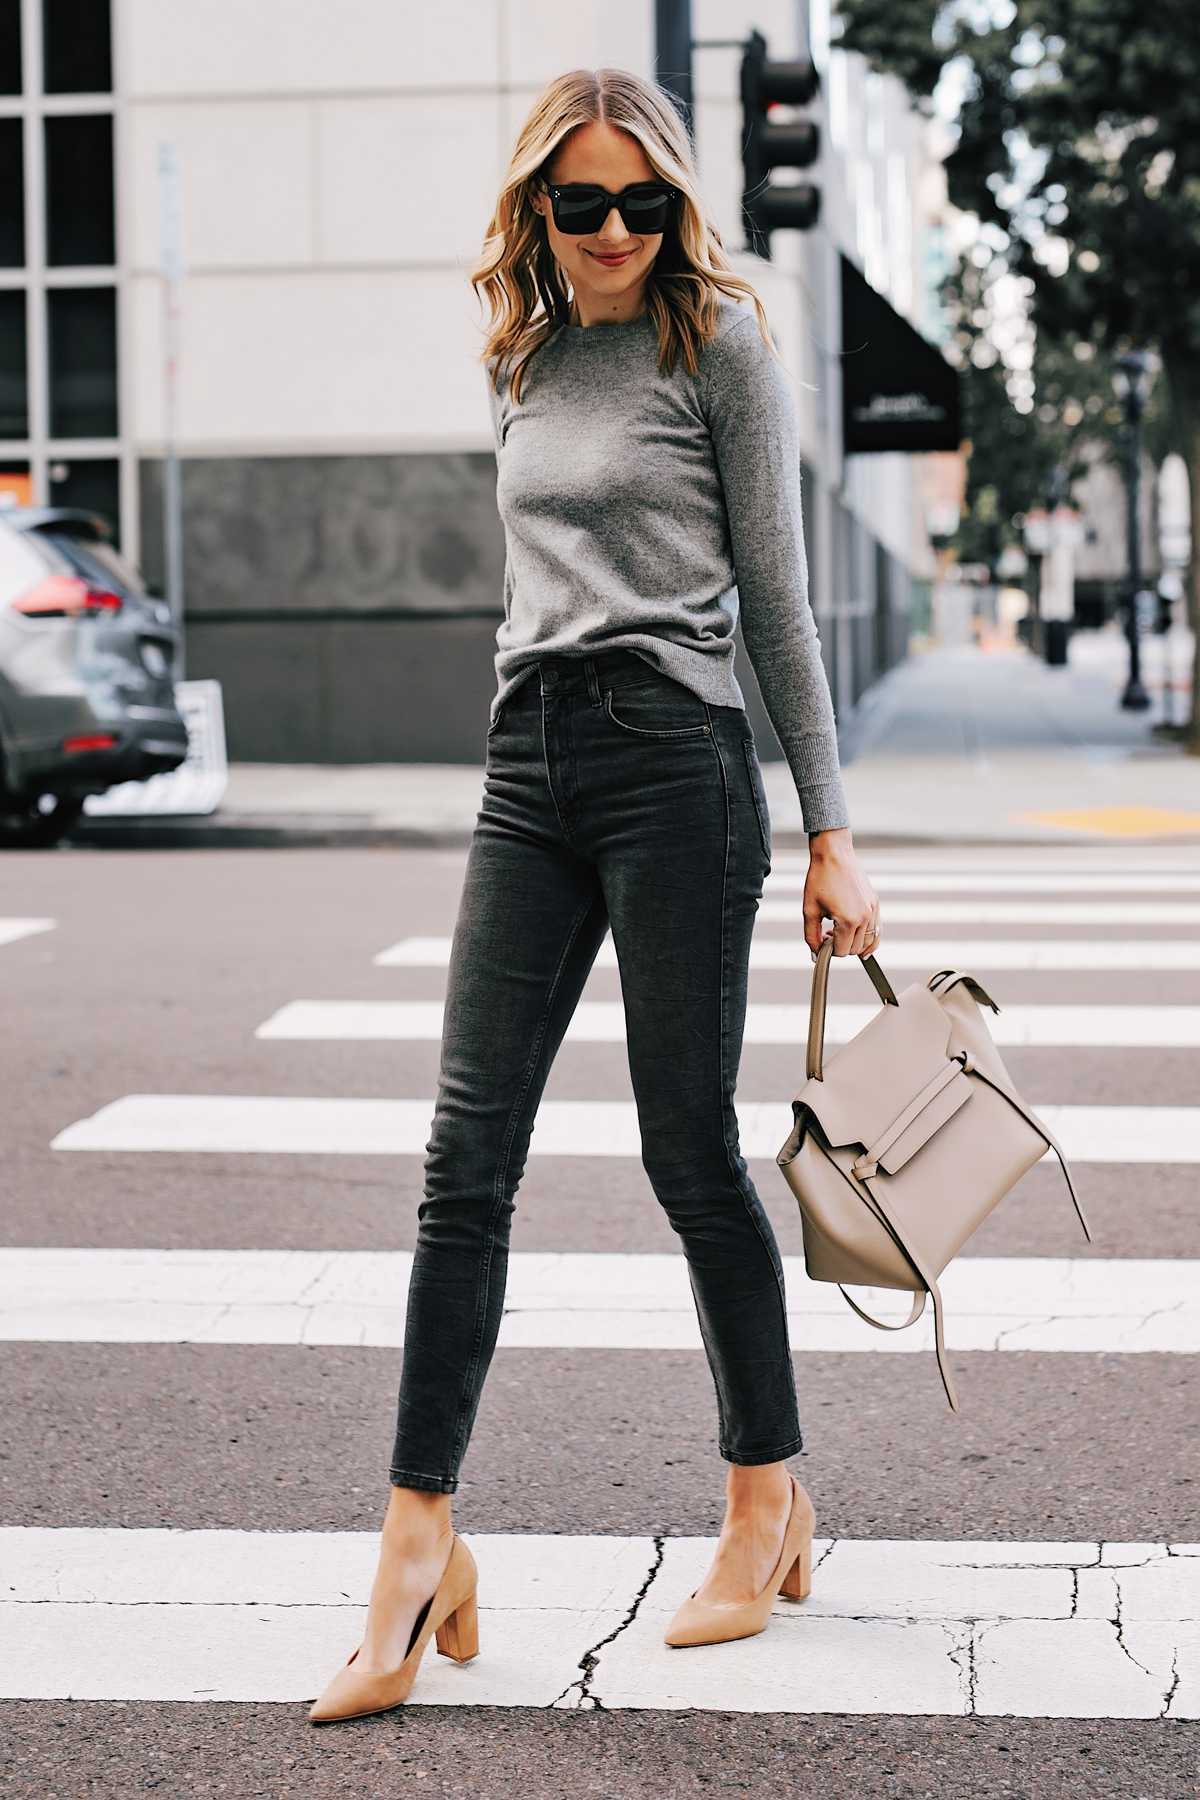 Fashion Jackson Wearing Everlane Grey Cashmere Sweater Anine Bing Grey Jagger Jeans Tan Pumps Celine Mini Belt Bag Taupe